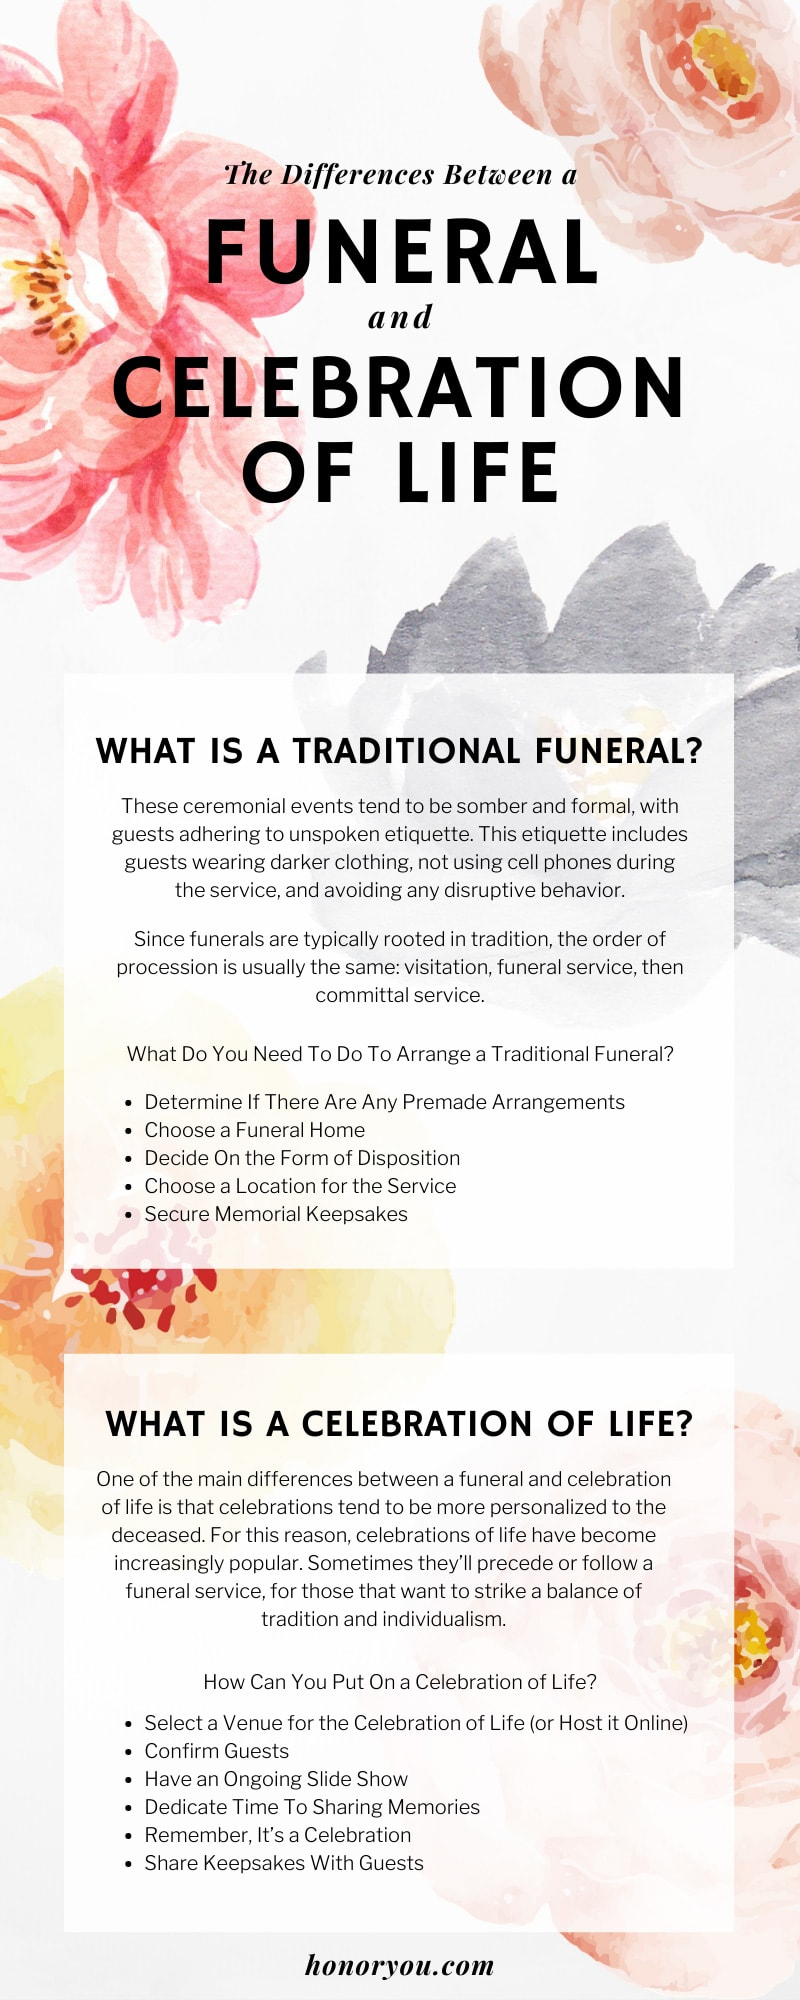 The Differences Between a Funeral and Celebration of Life